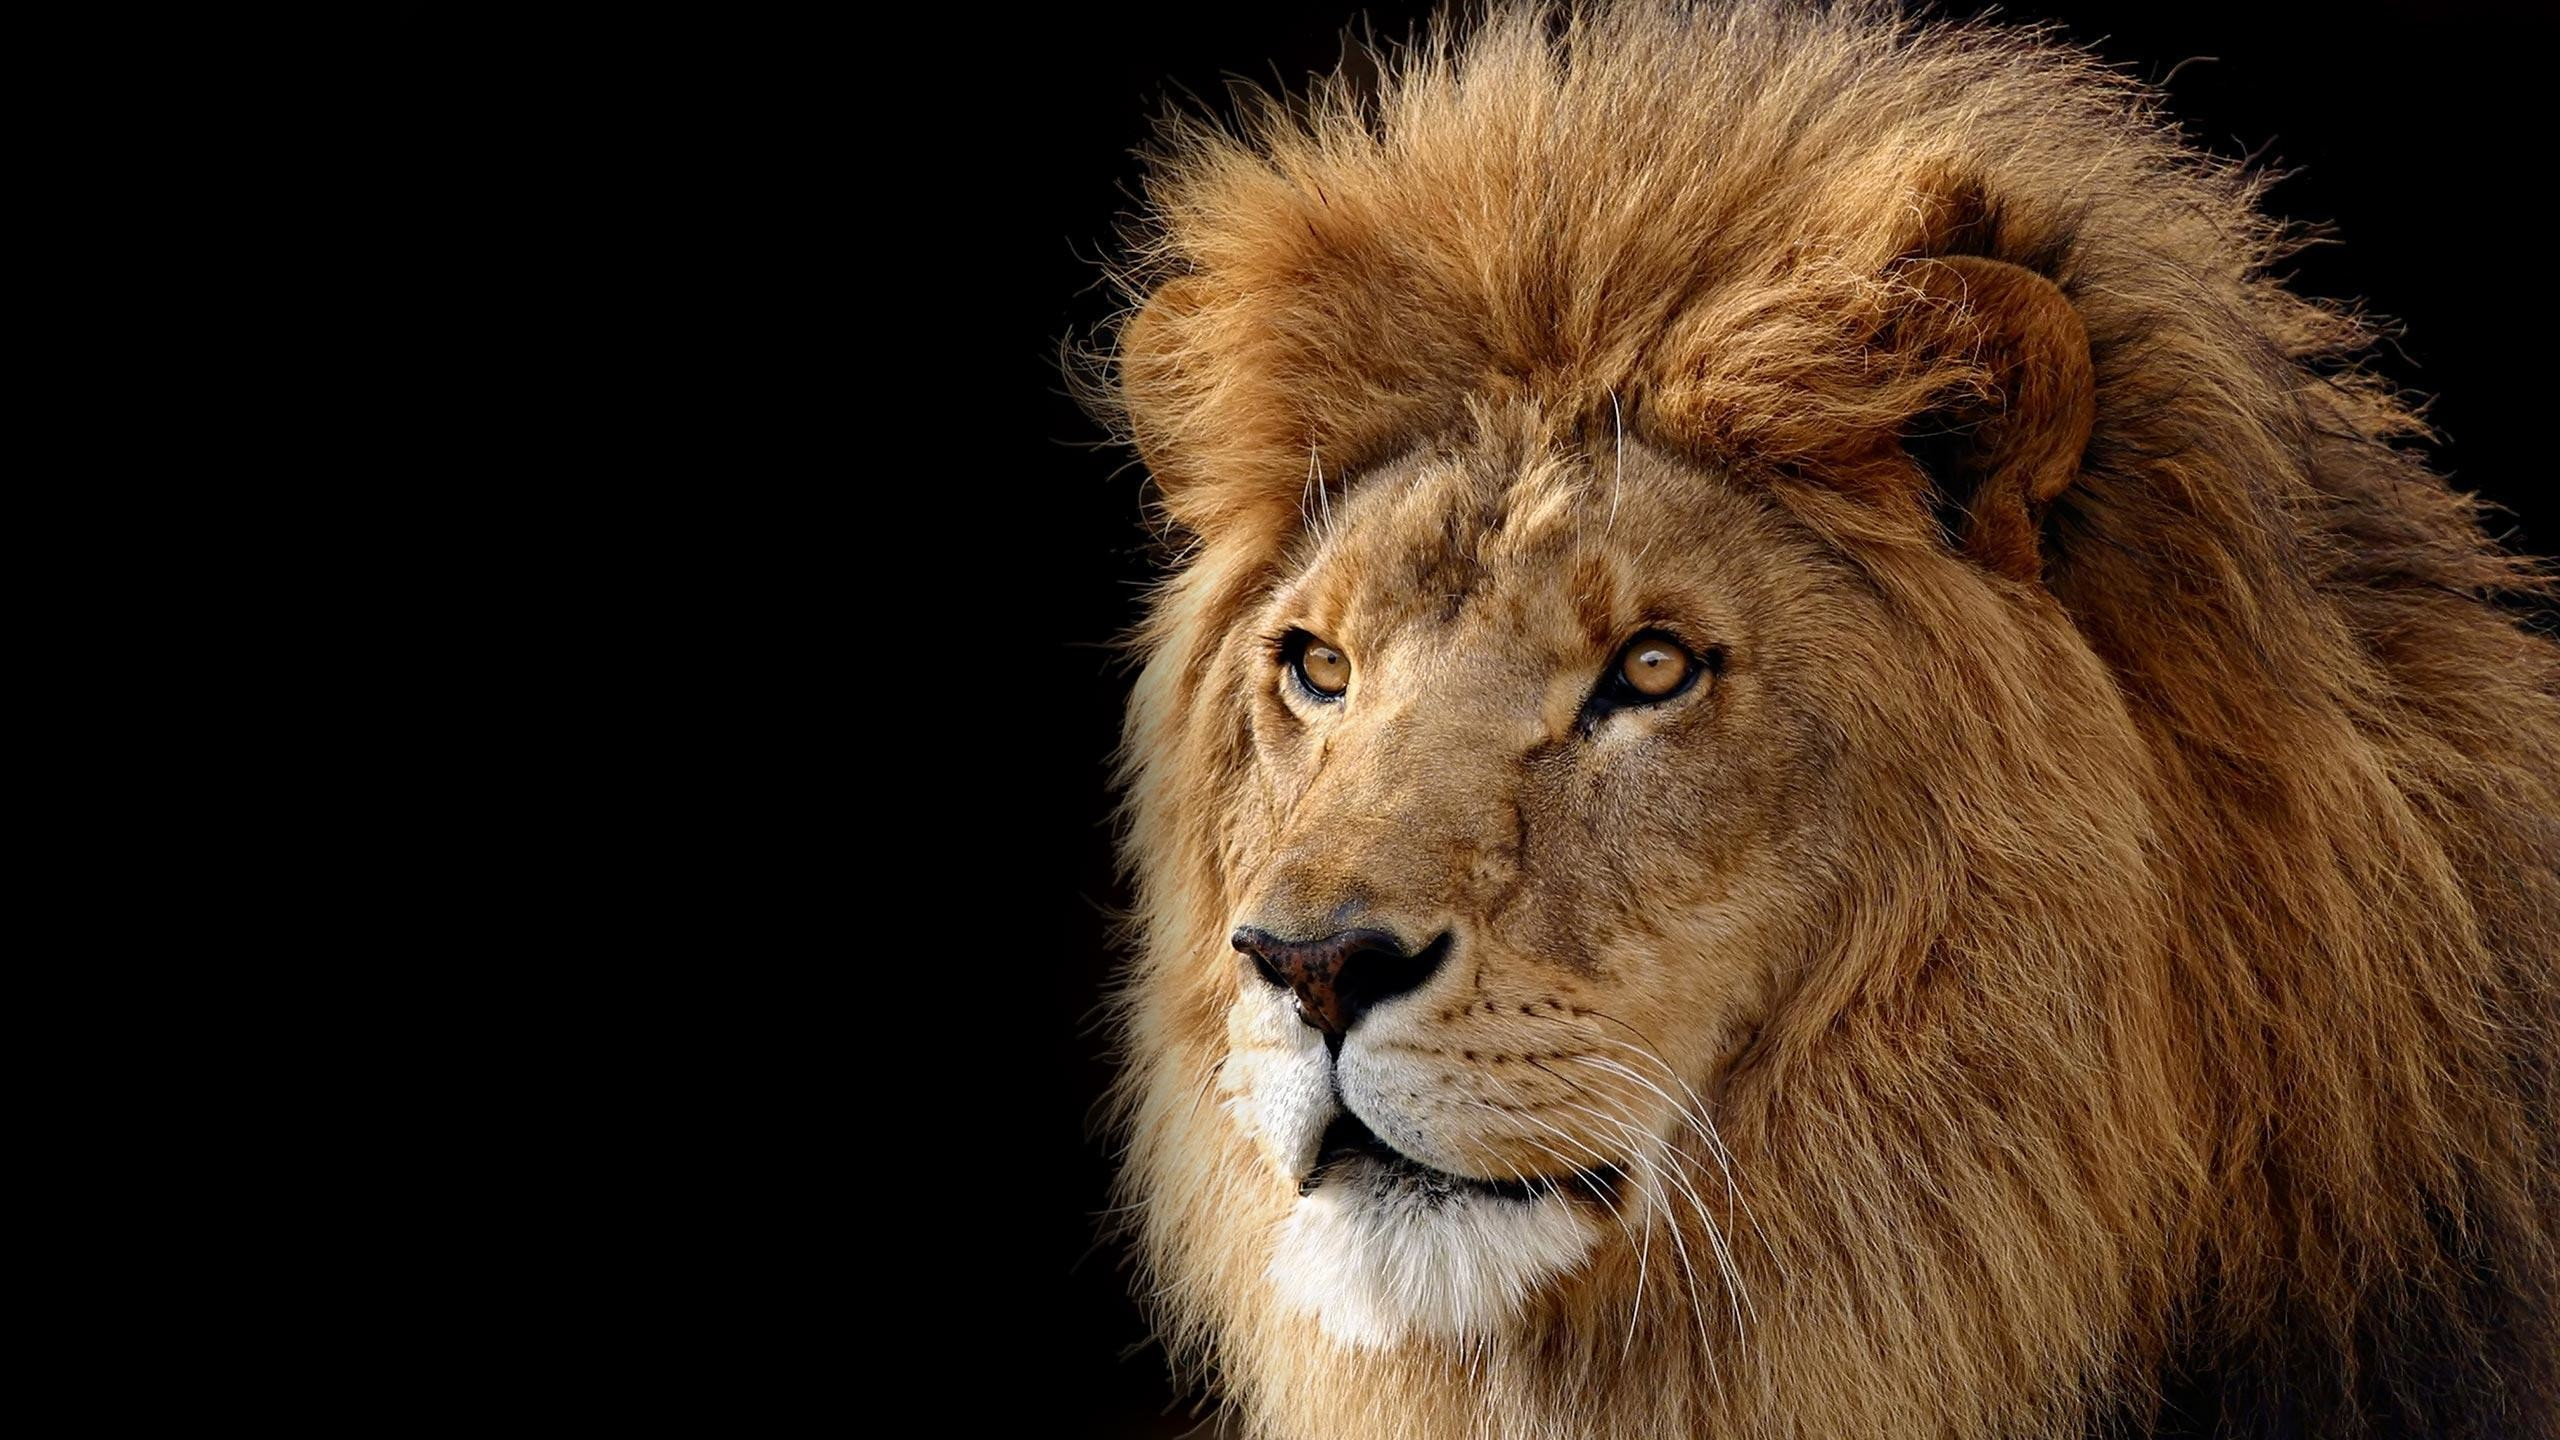 Lion Wallpapers 12637